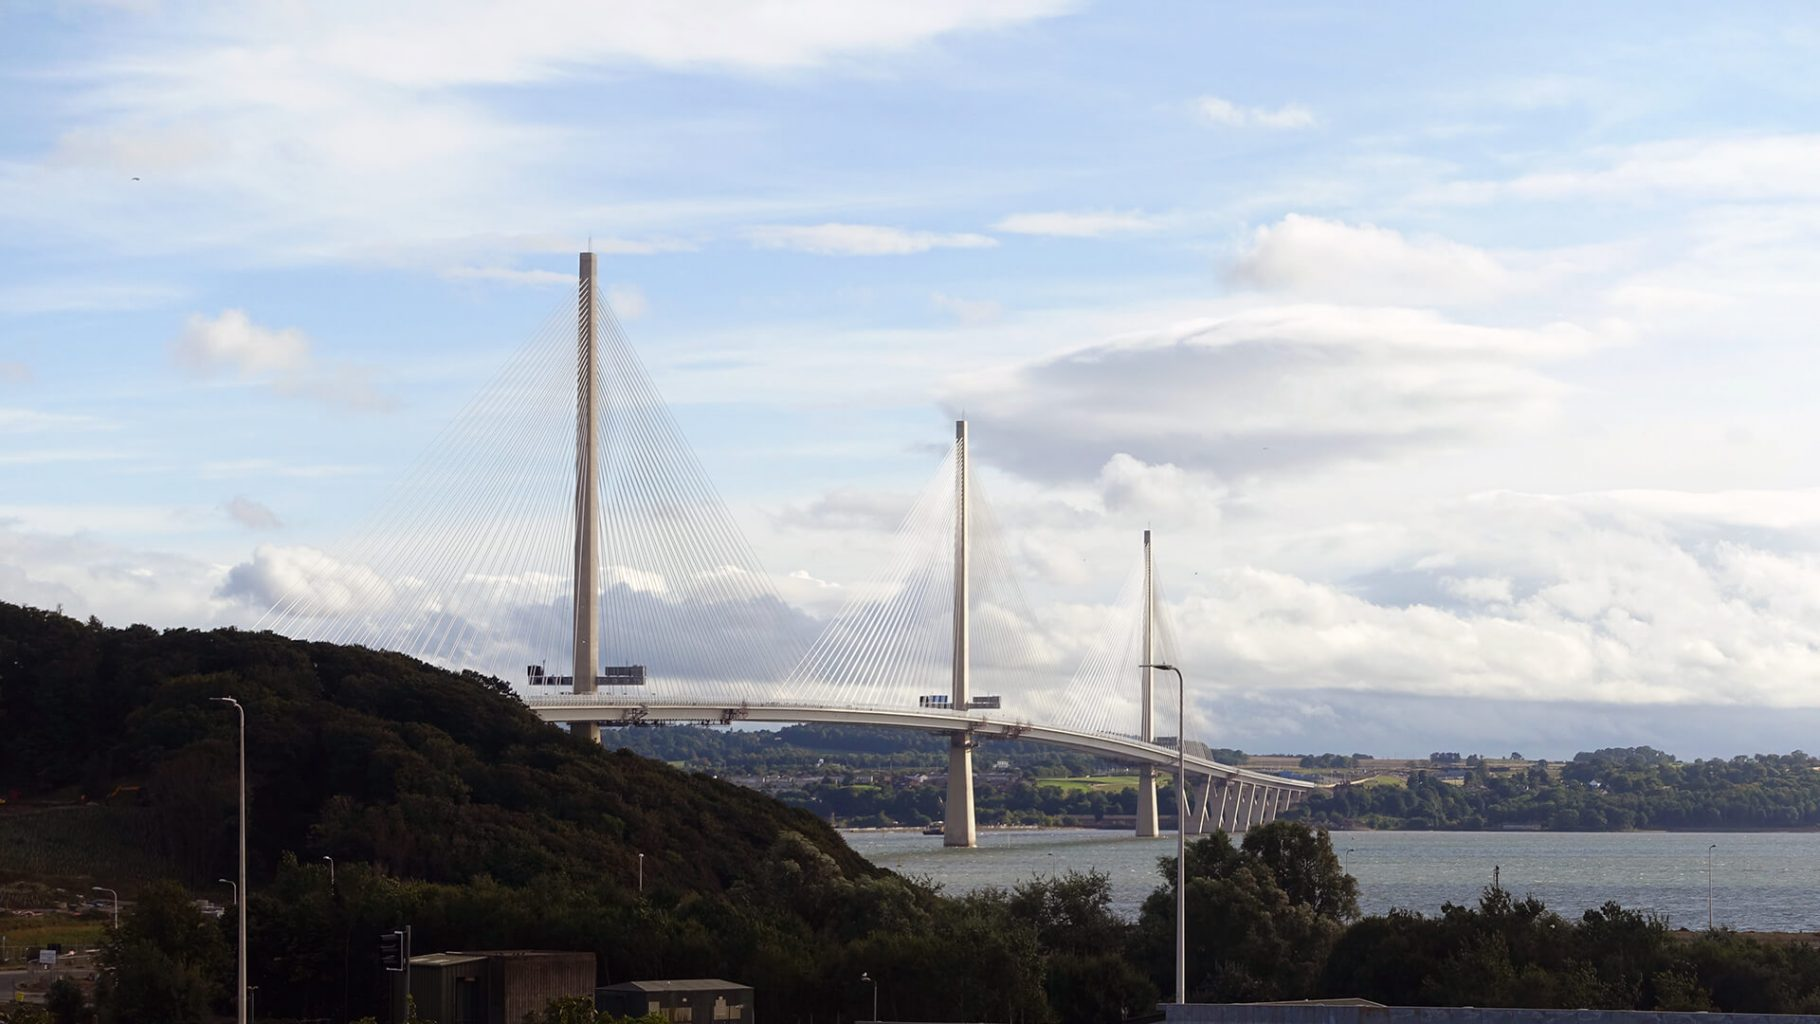 Forth Road Bridge, Queensferry